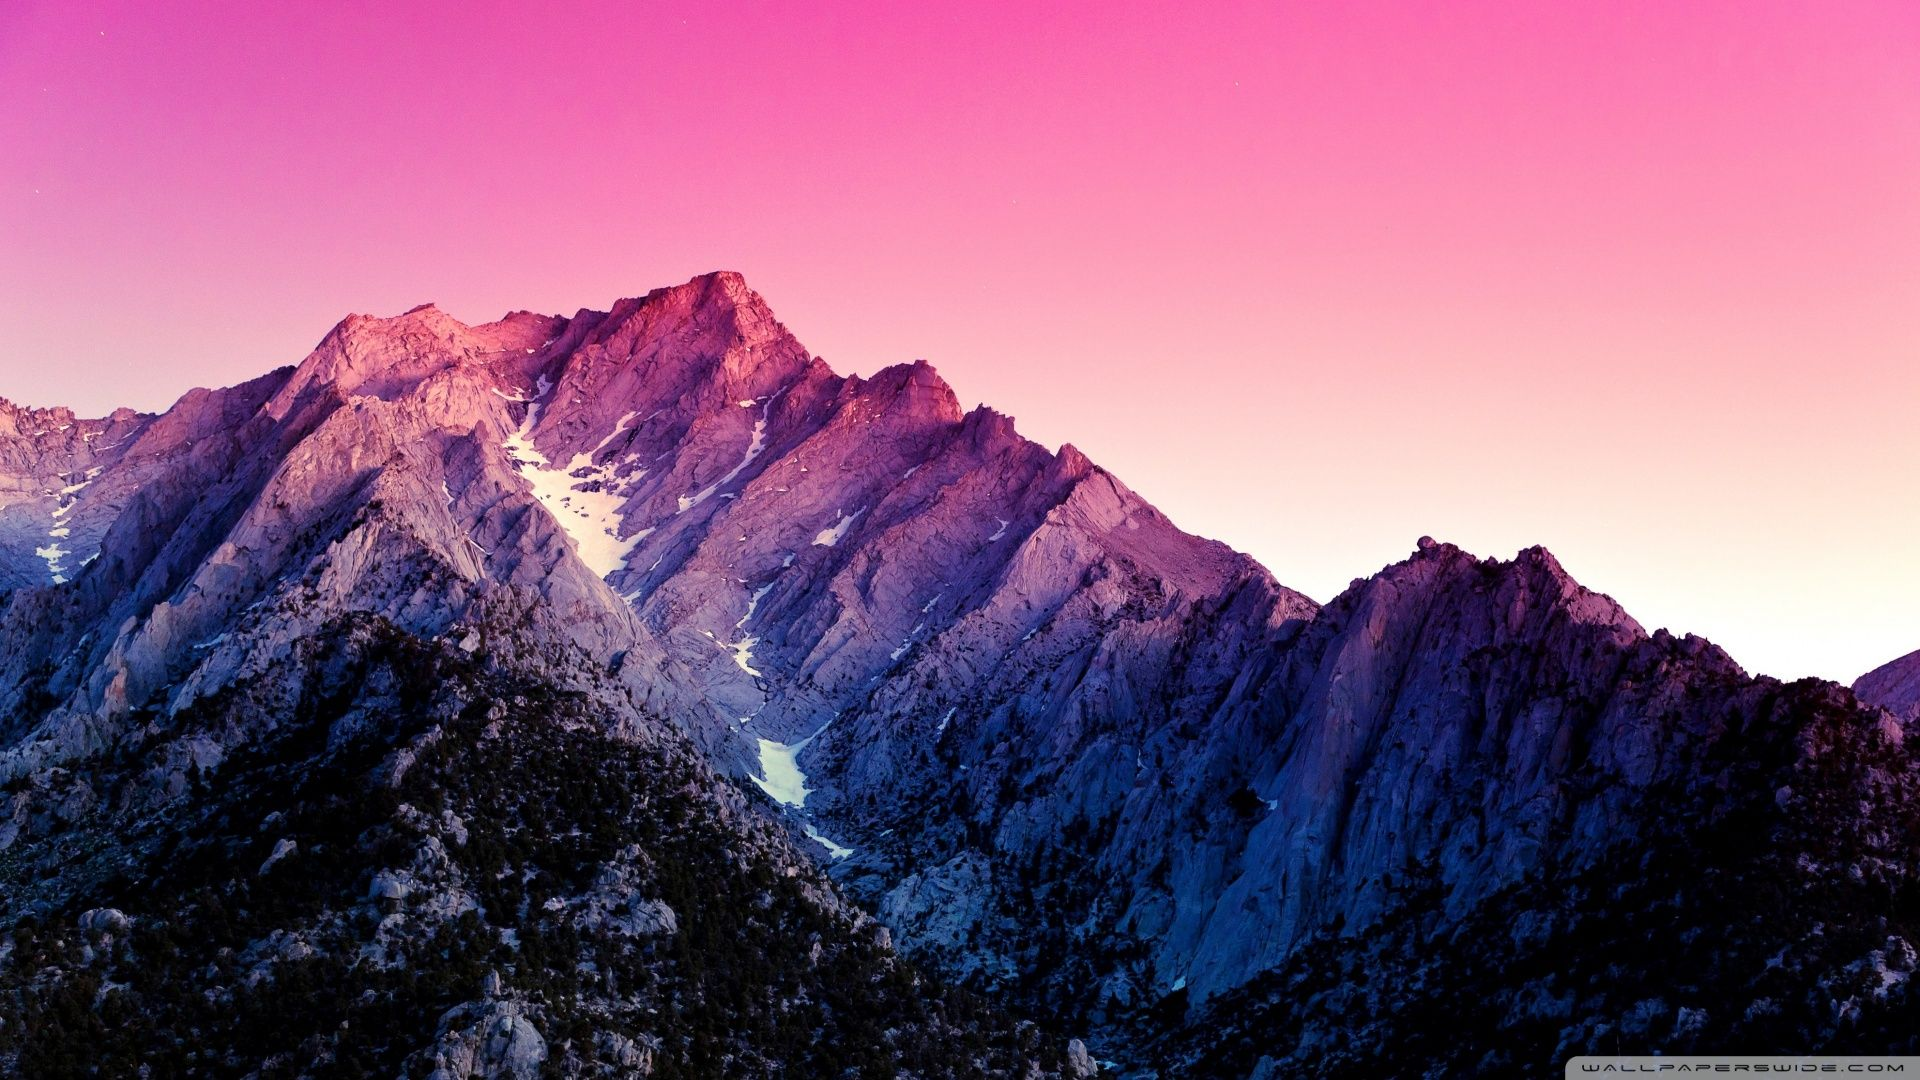 1080p Mountain Wallpapers Top Free 1080p Mountain Backgrounds